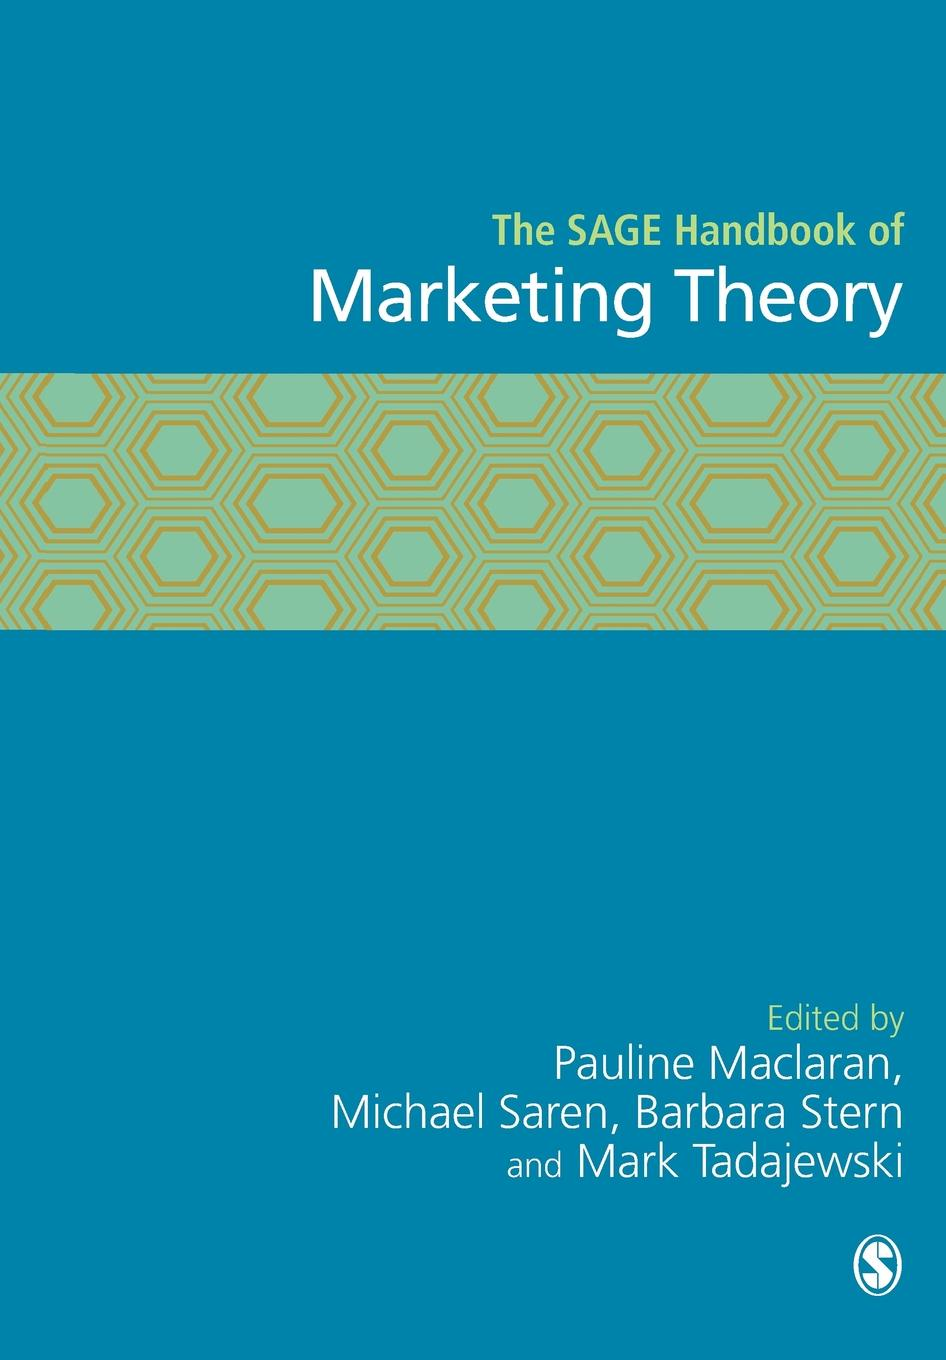 цена на Pauline Maclaran, Michael Saren, Barbara Stern The SAGE Handbook of Marketing Theory